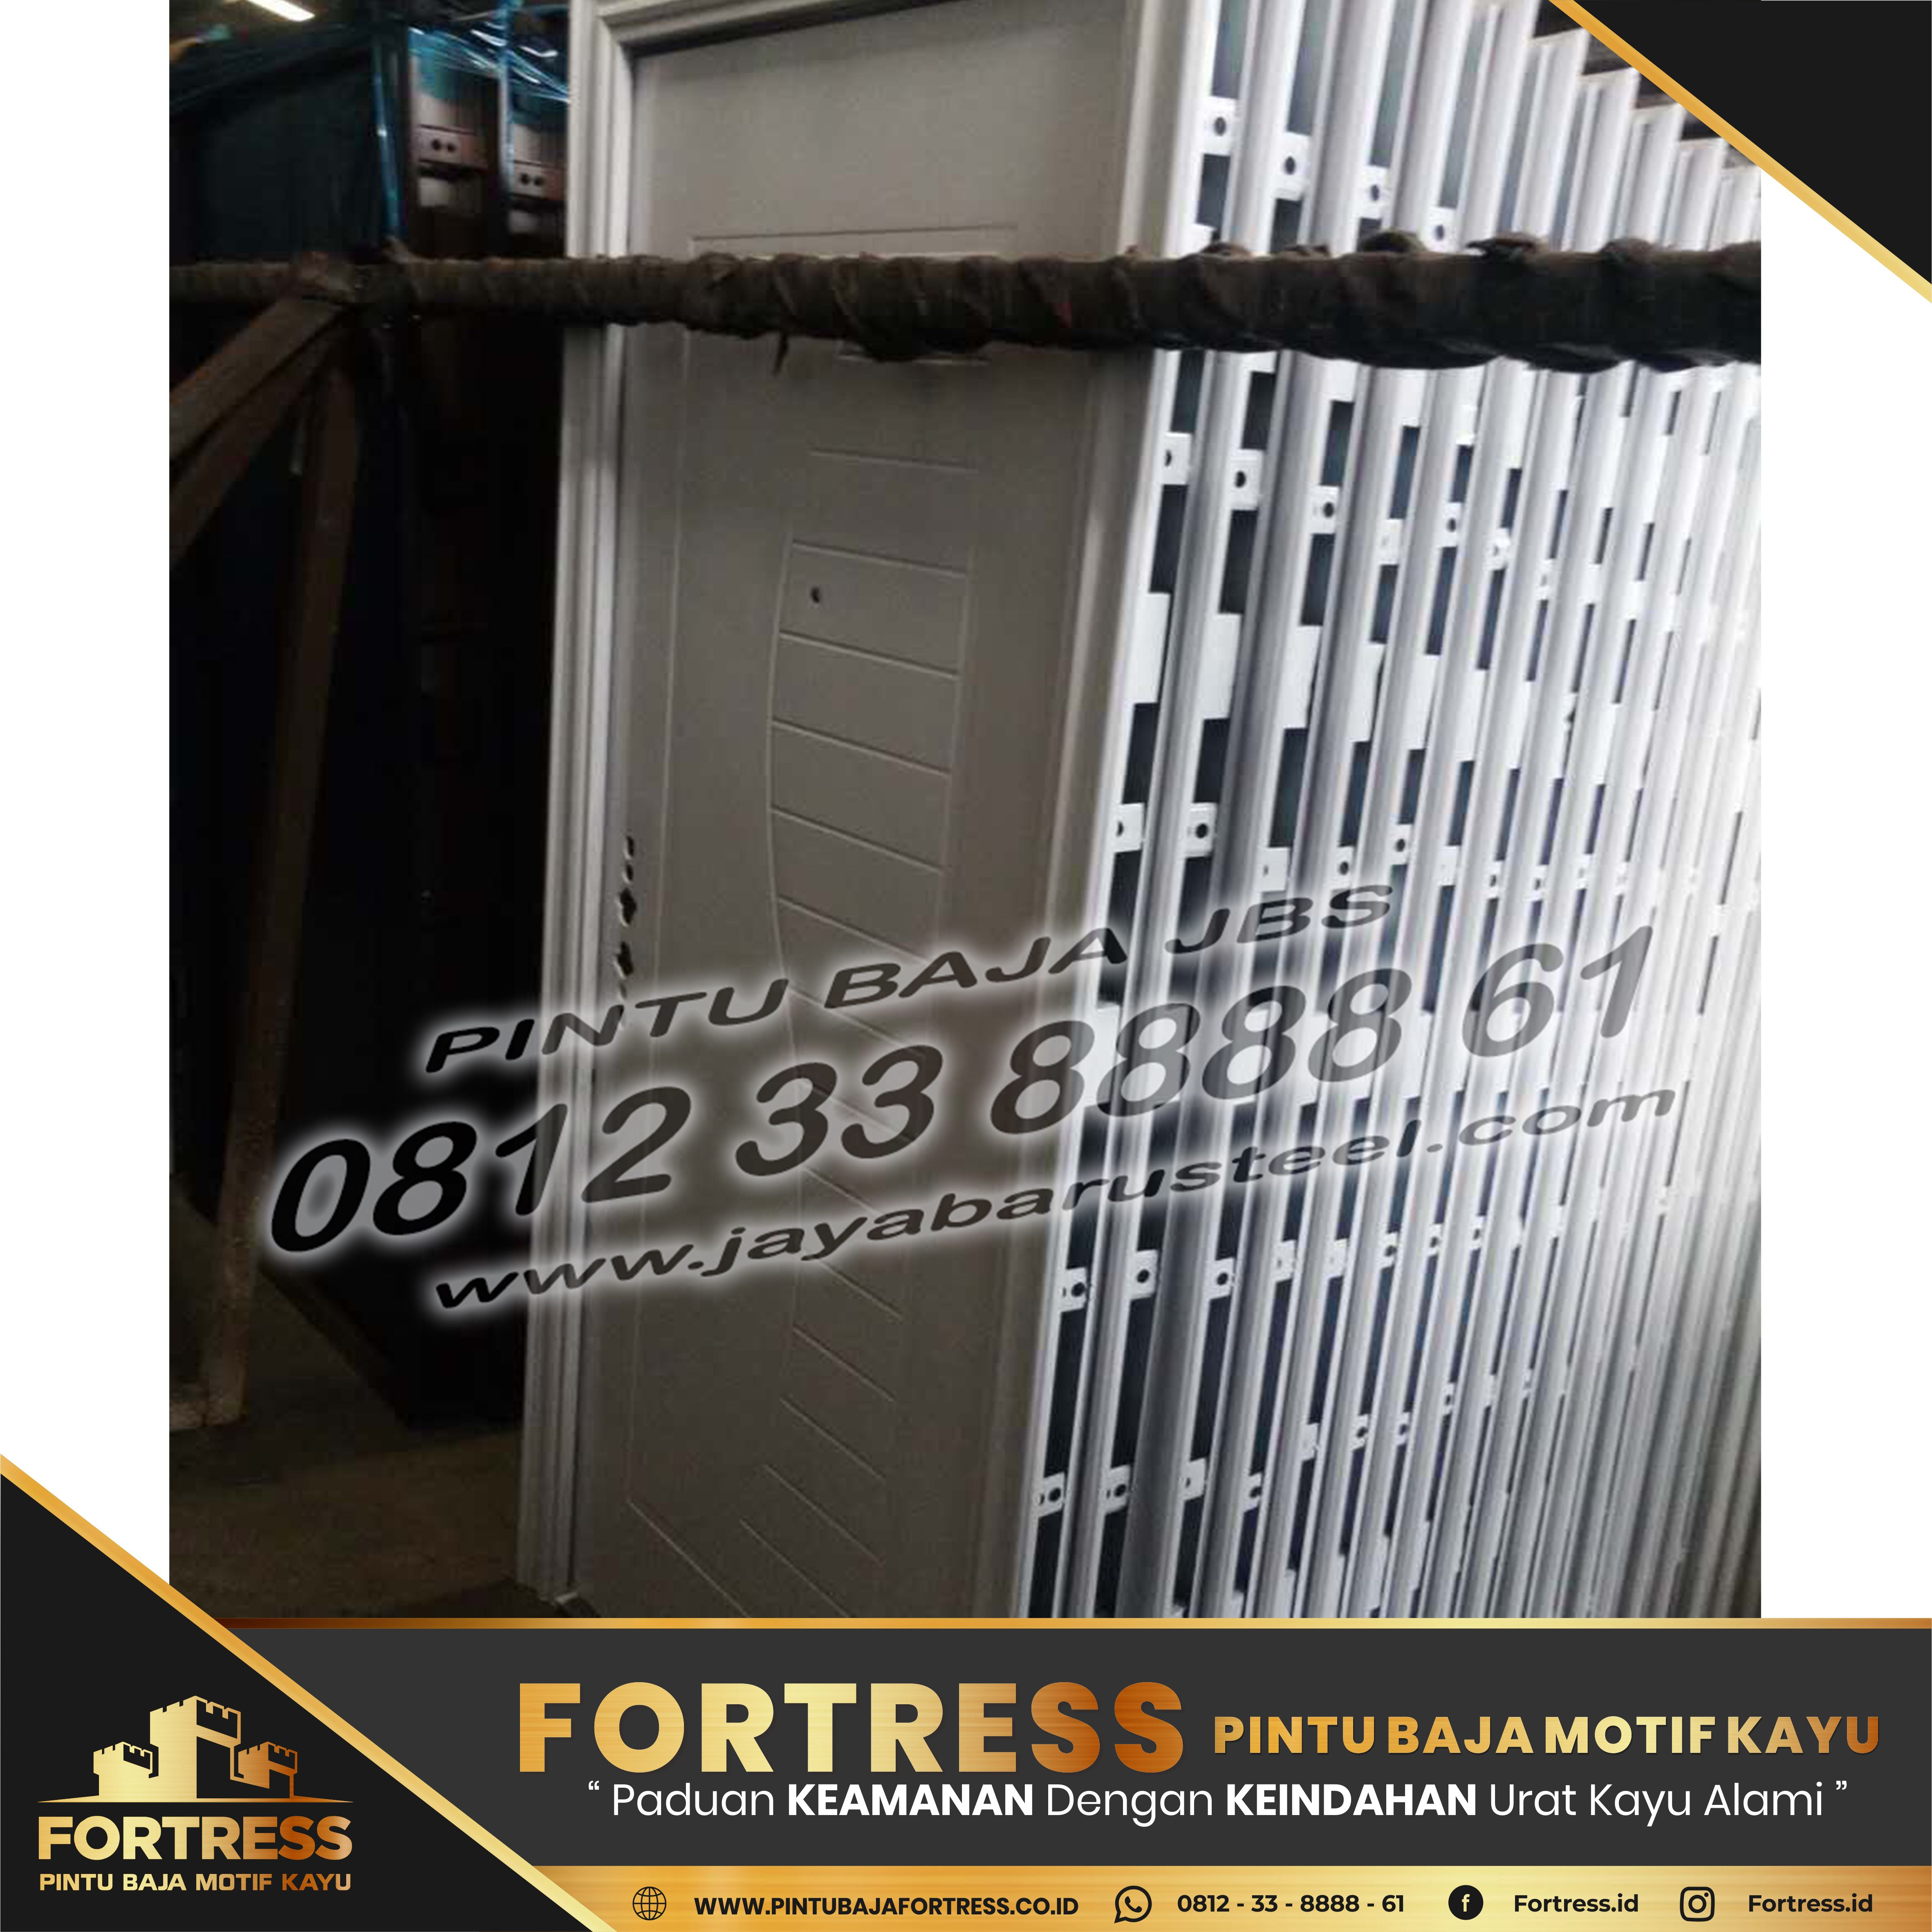 0821-91-6261-07 (FORTRESS) Turning Doors And Steel Frames, …